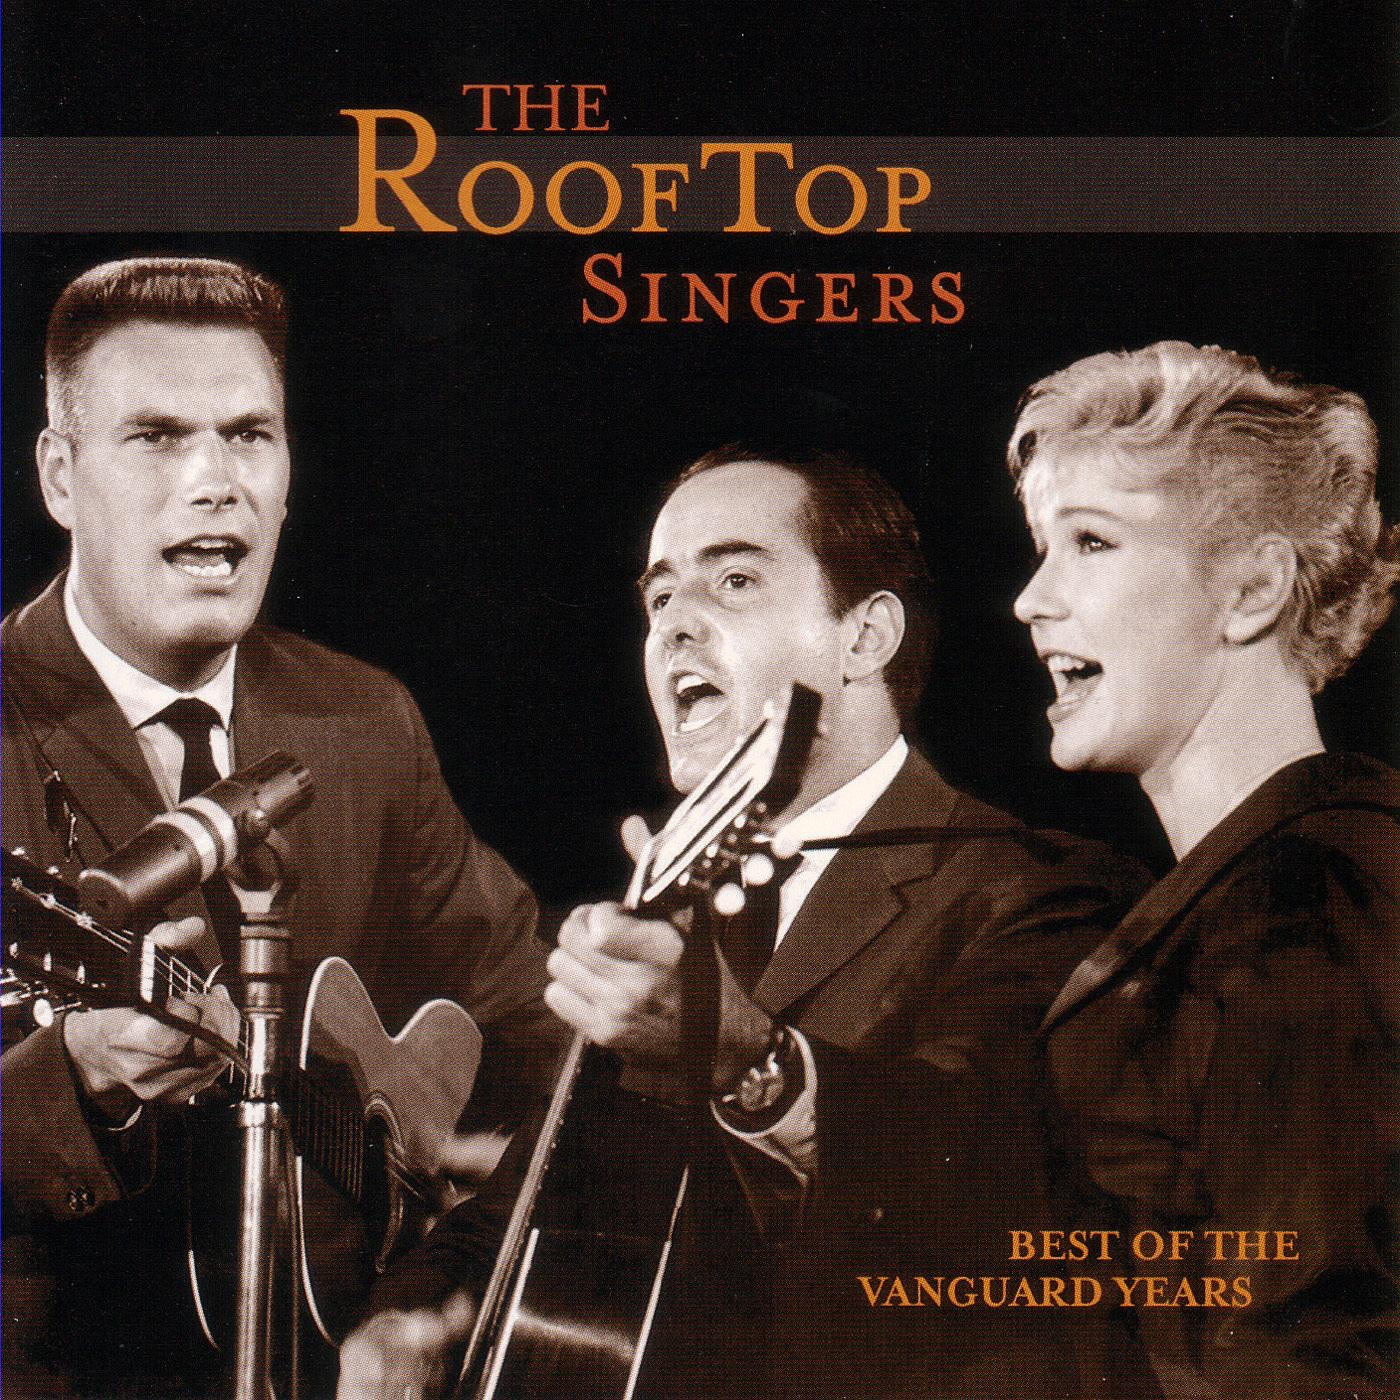 The rooftop singers Walk right in - YouTube